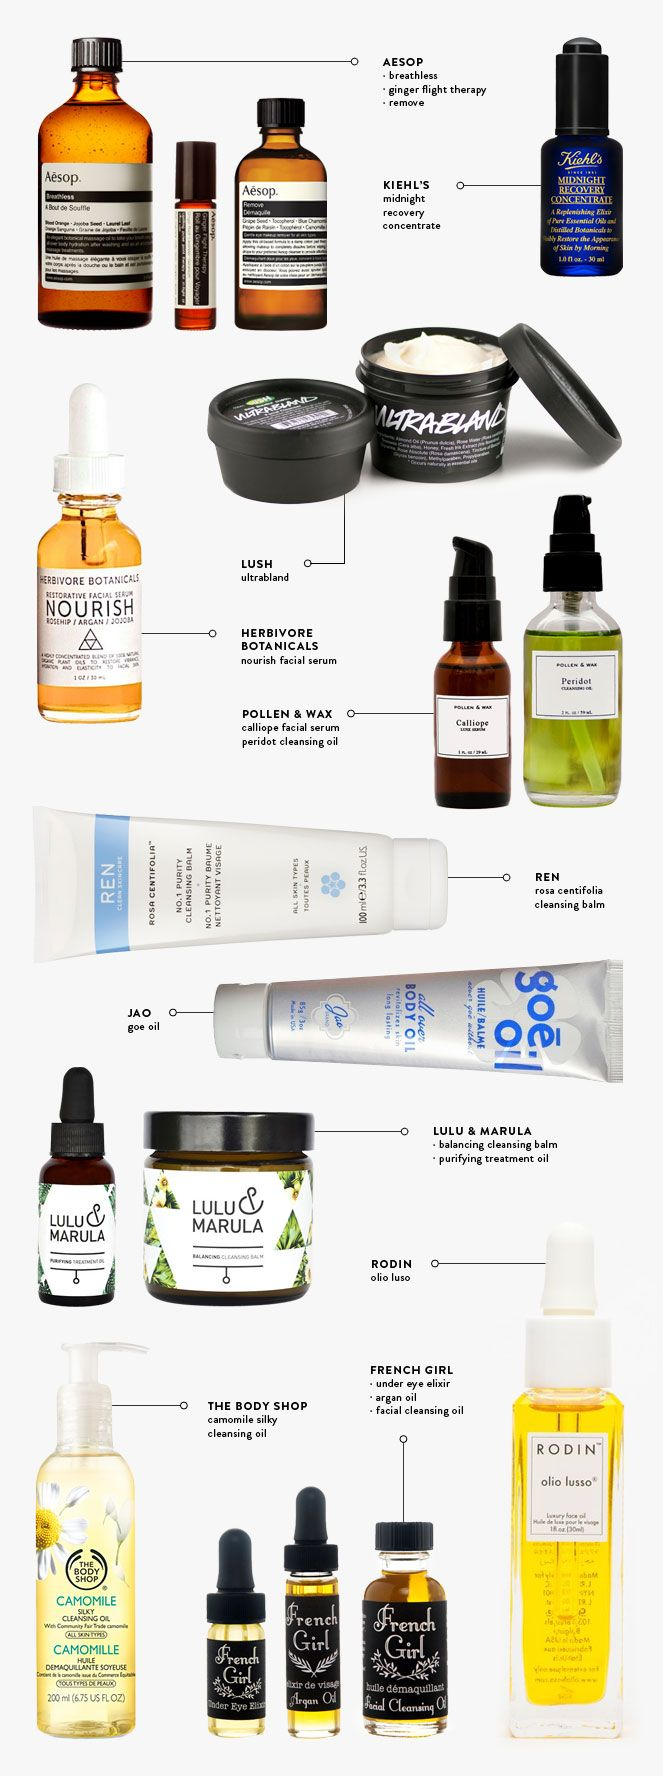 The best in serums and oils. A semi-guide to simple skin care with product reviews.